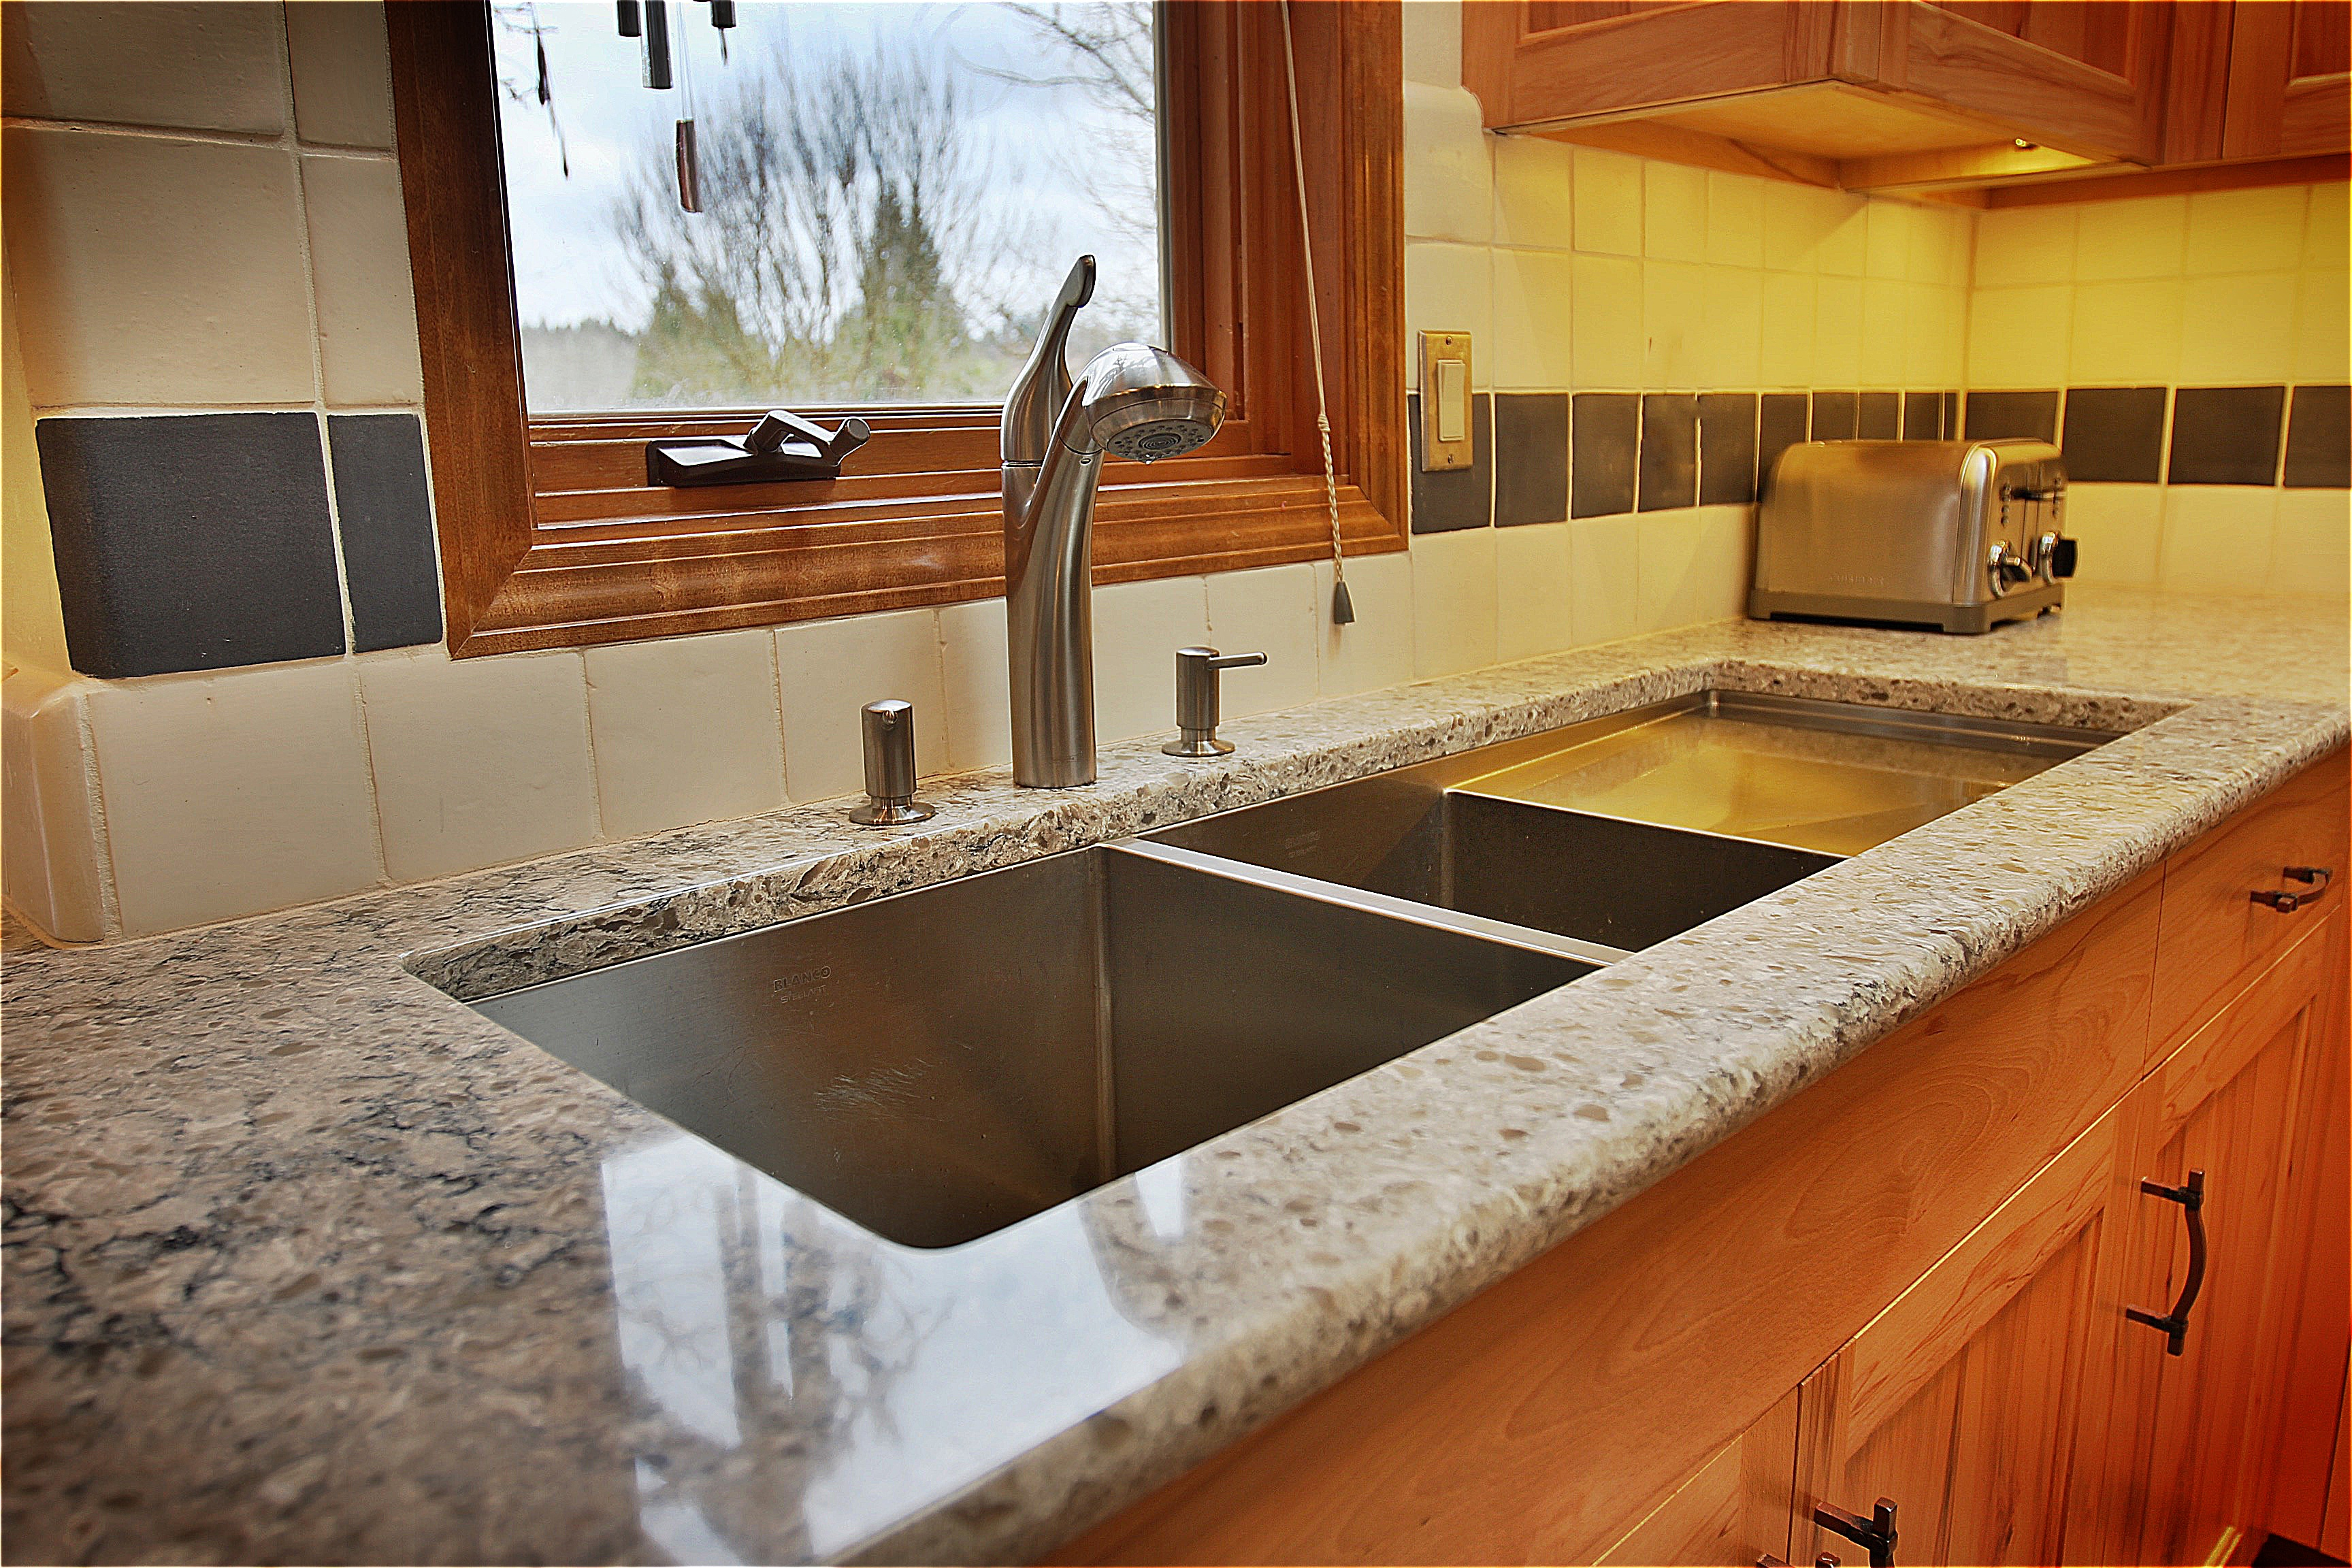 fill kitchen labels by wonderful full cost stainless of installed countertops furniture your steel granite dream sink to grey countertop connected brown